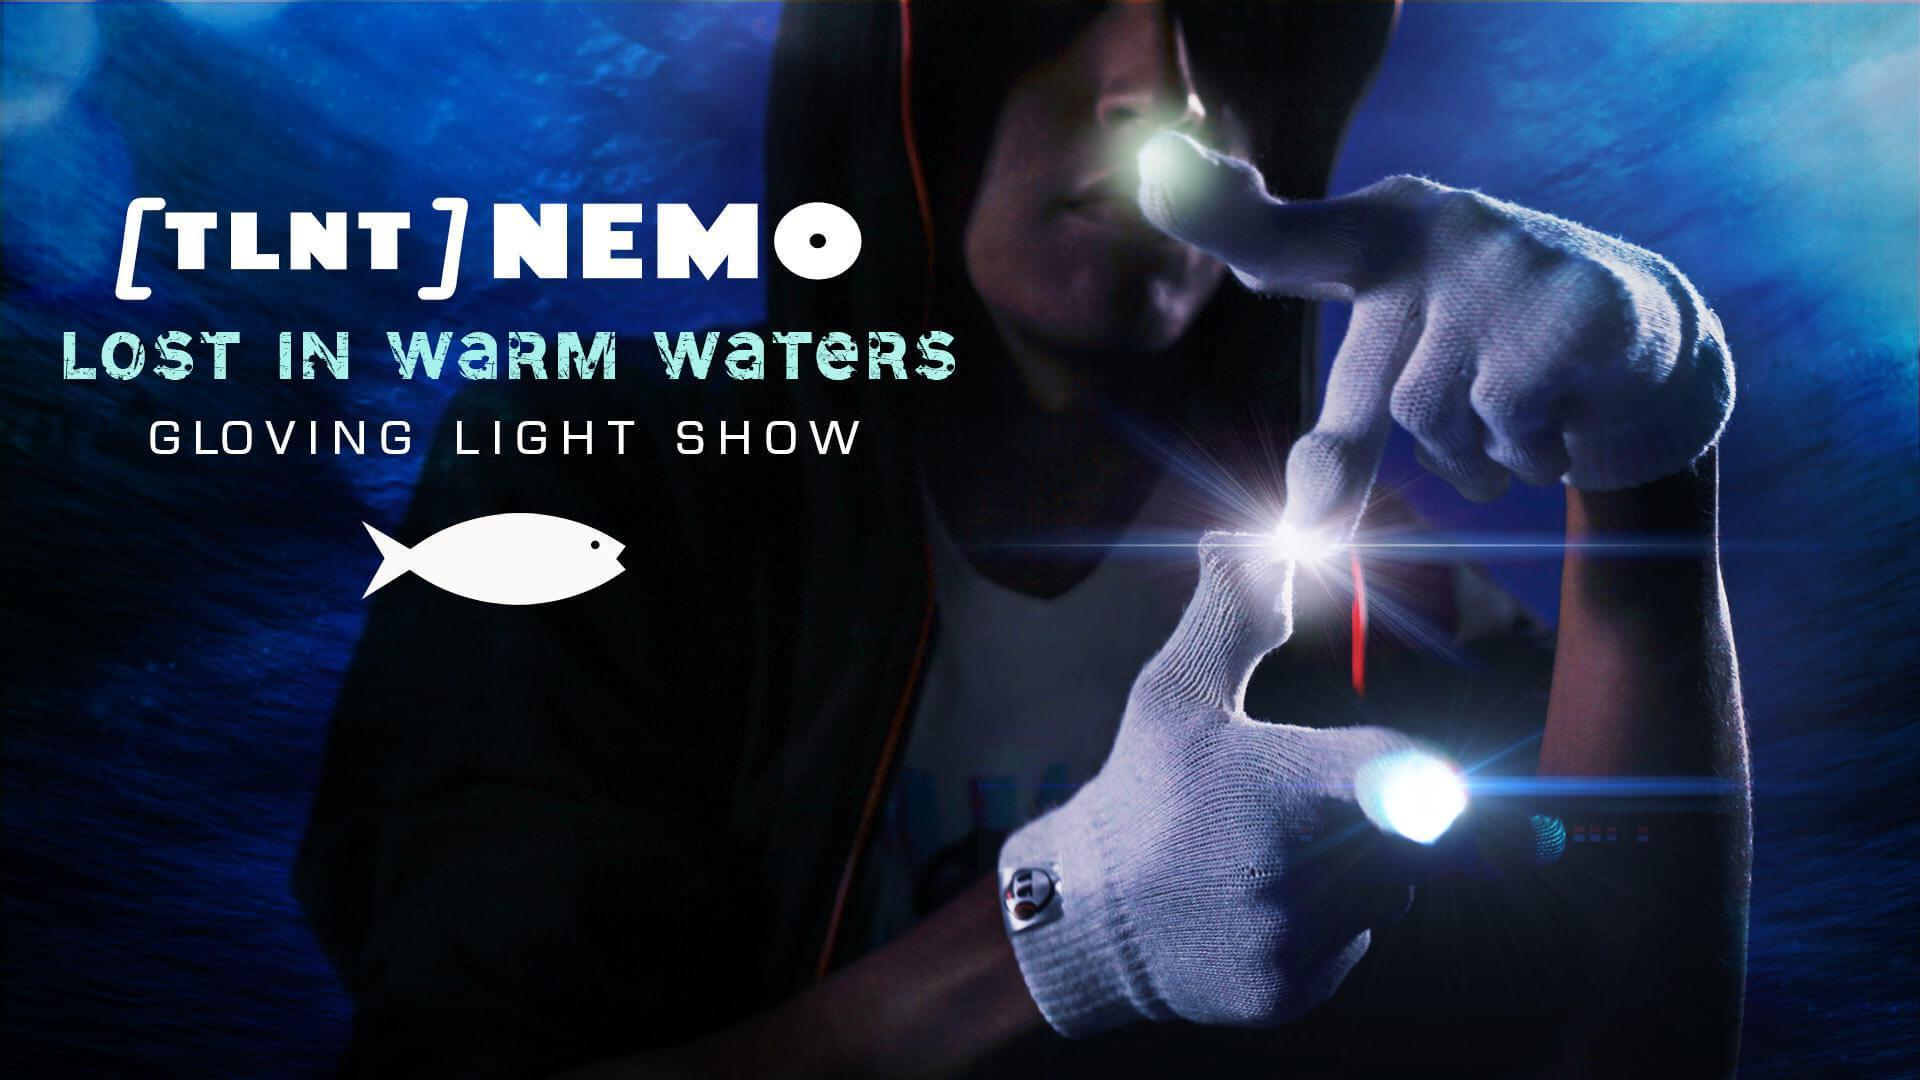 "(TLNT) Nemo ""Lost in Warm Waters"" – Featured Video Breakdown by Ice Kream Teddy"